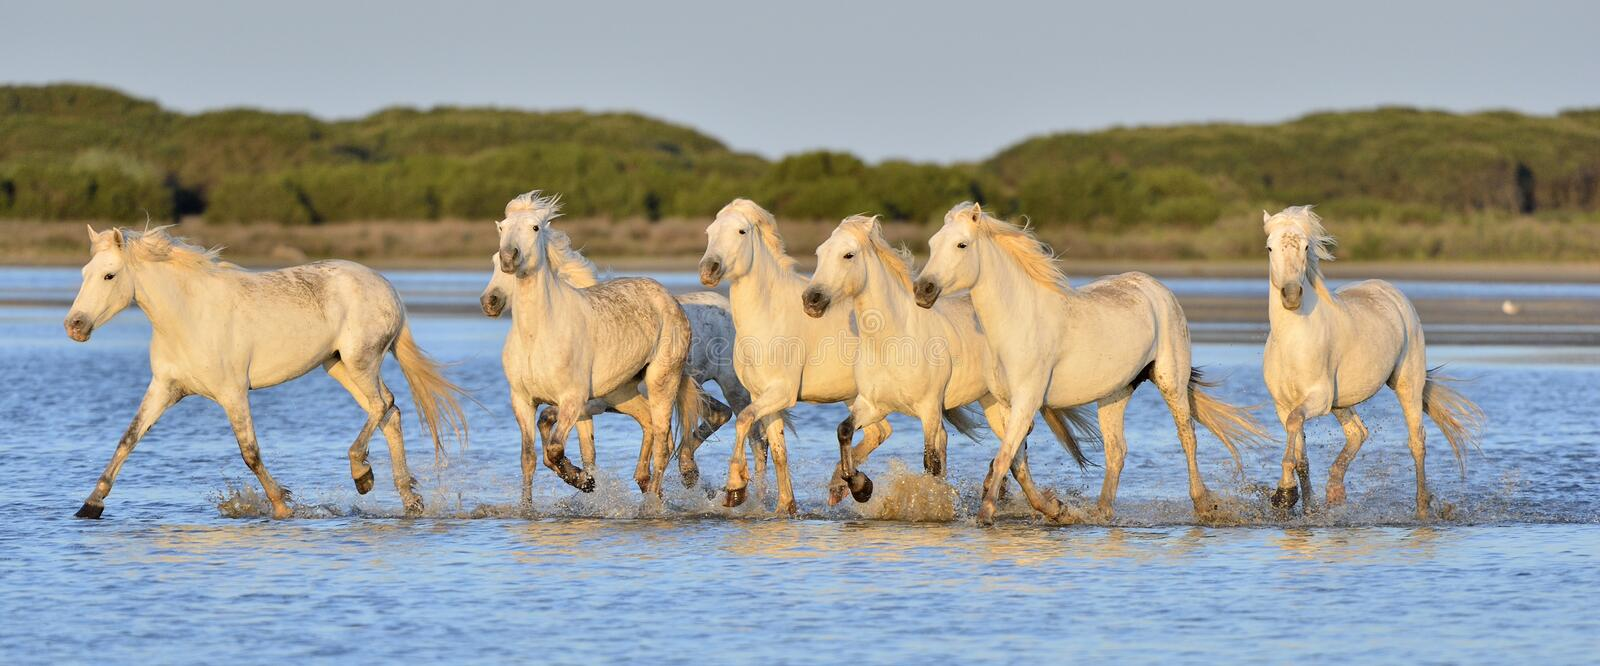 Herd of White Camargue Horses running on the water . royalty free stock photography